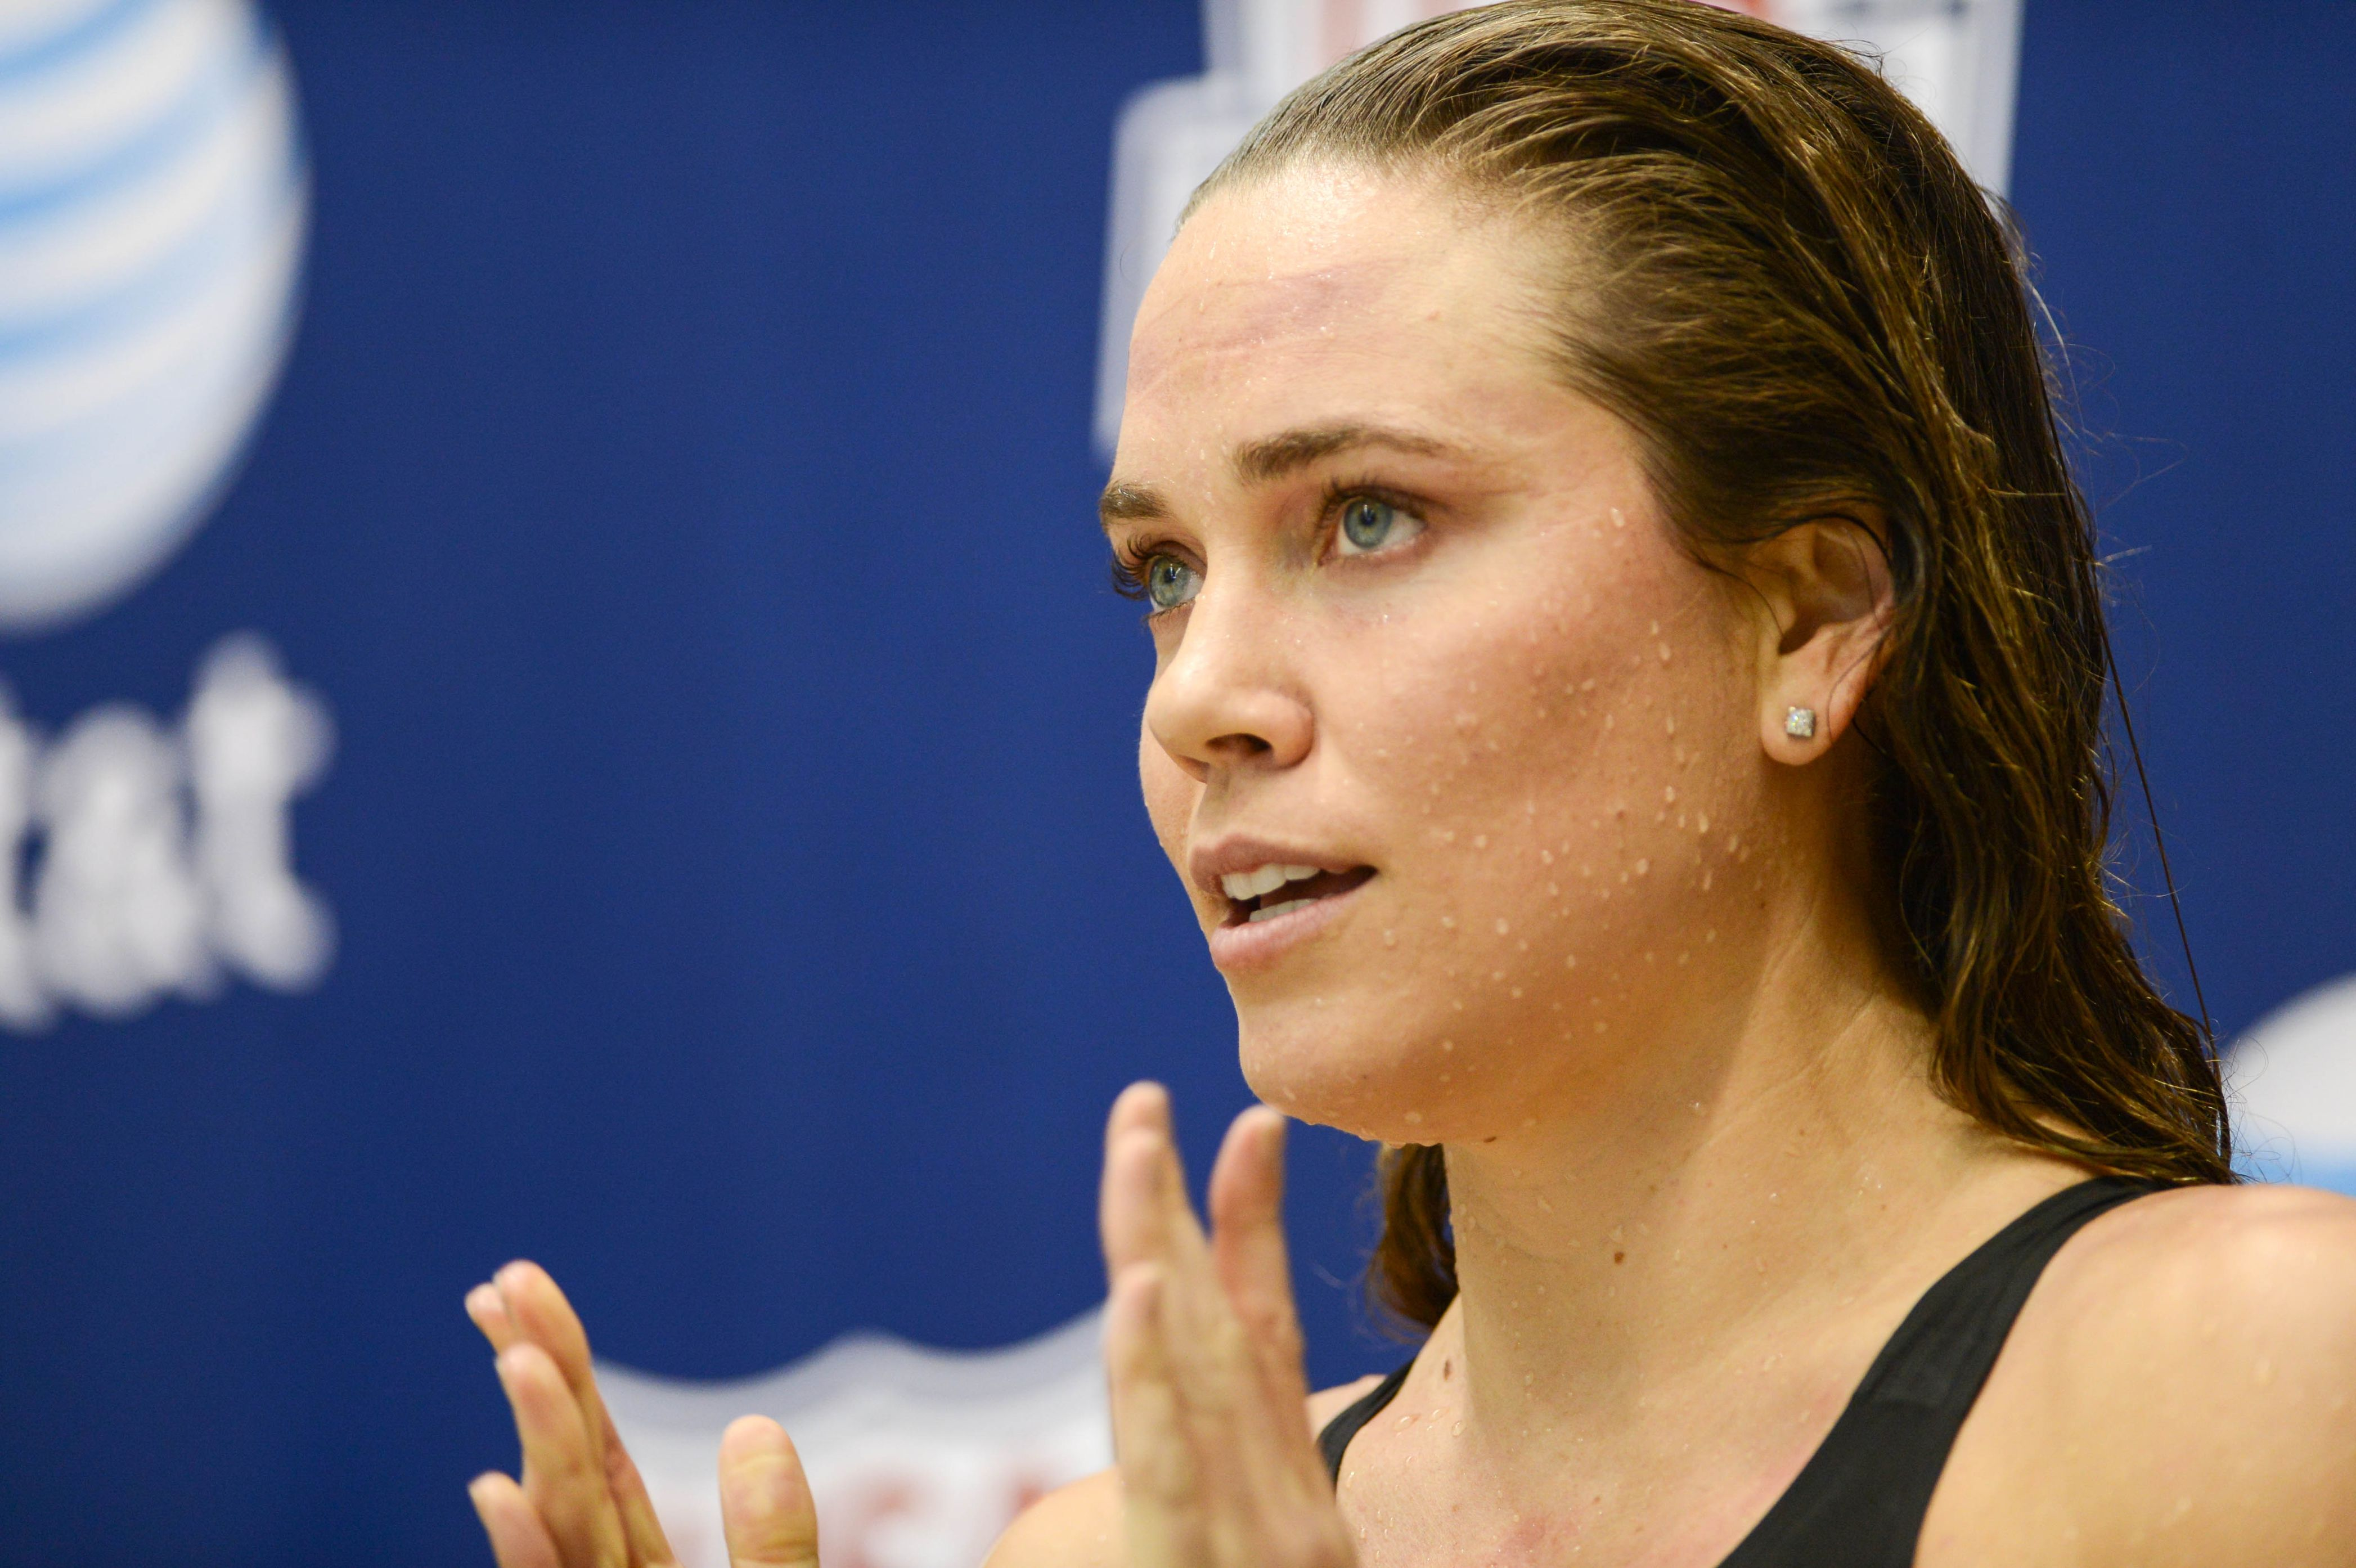 Natalie Coughlin earned a  million dollar salary - leaving the net worth at 1 million in 2018